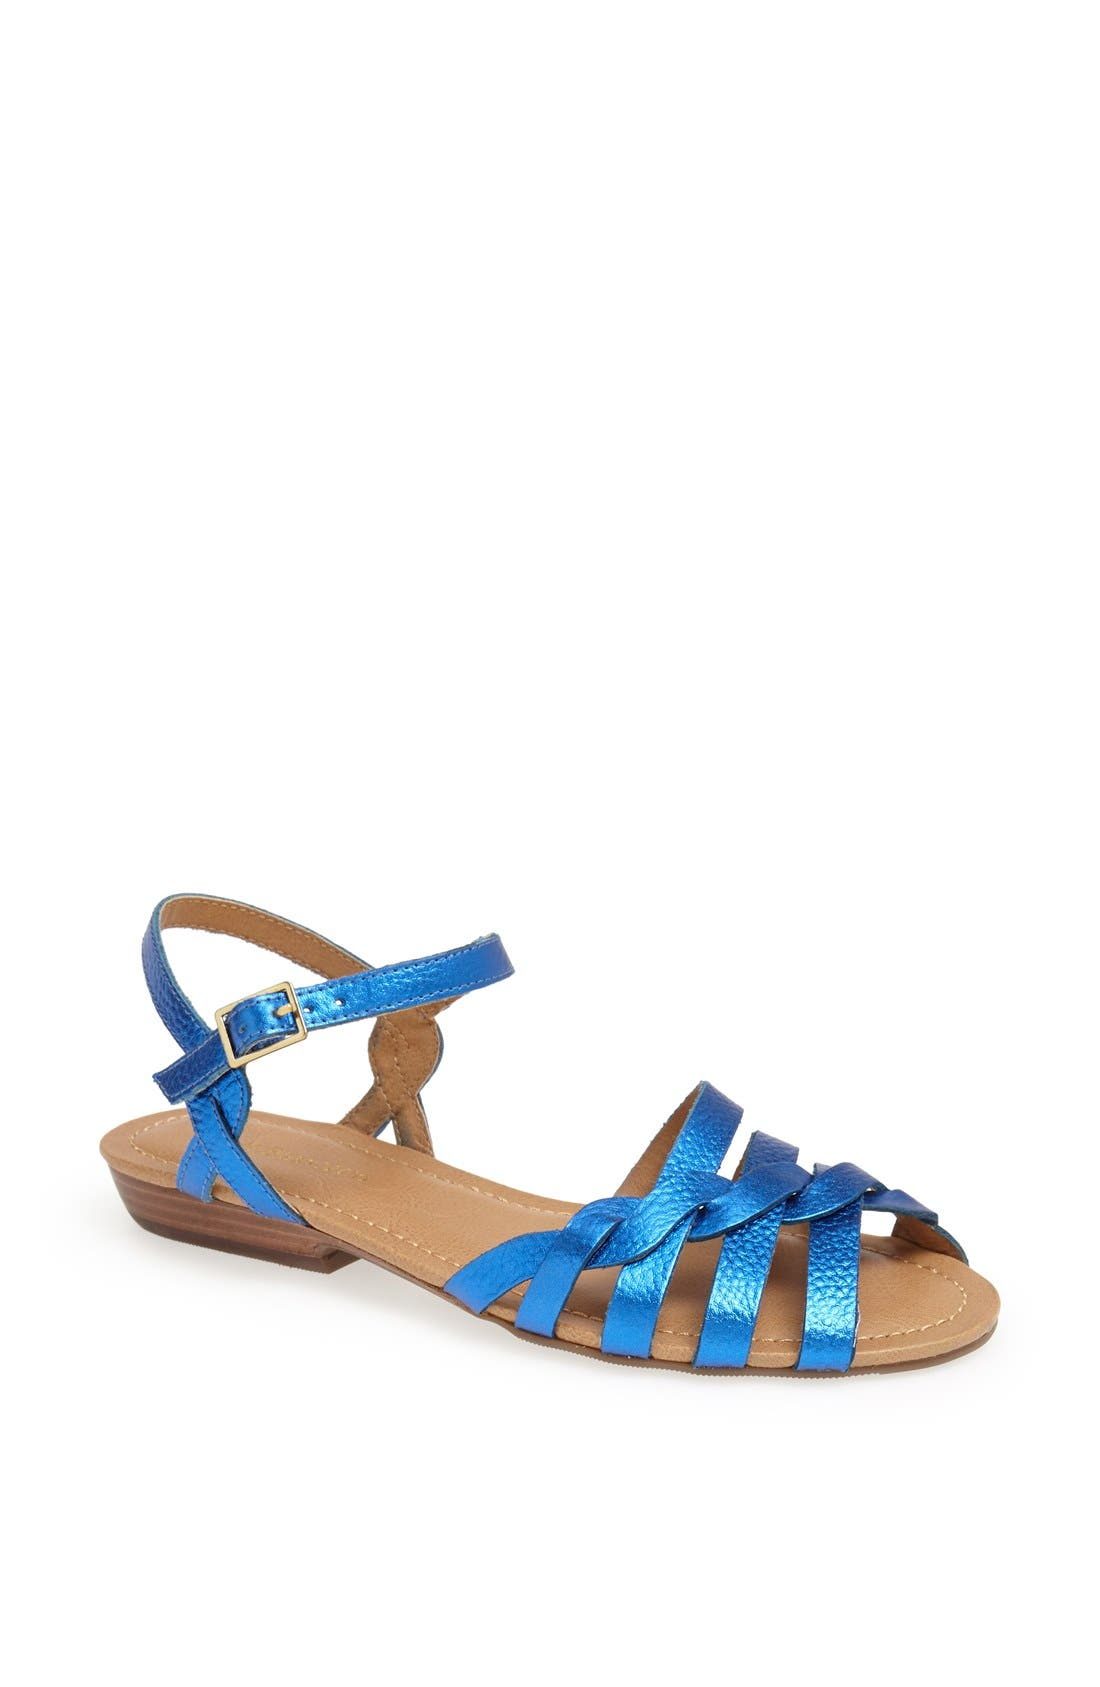 Alternate Image 1 Selected - G.H. Bass & Co. 'Clementine' Sandal